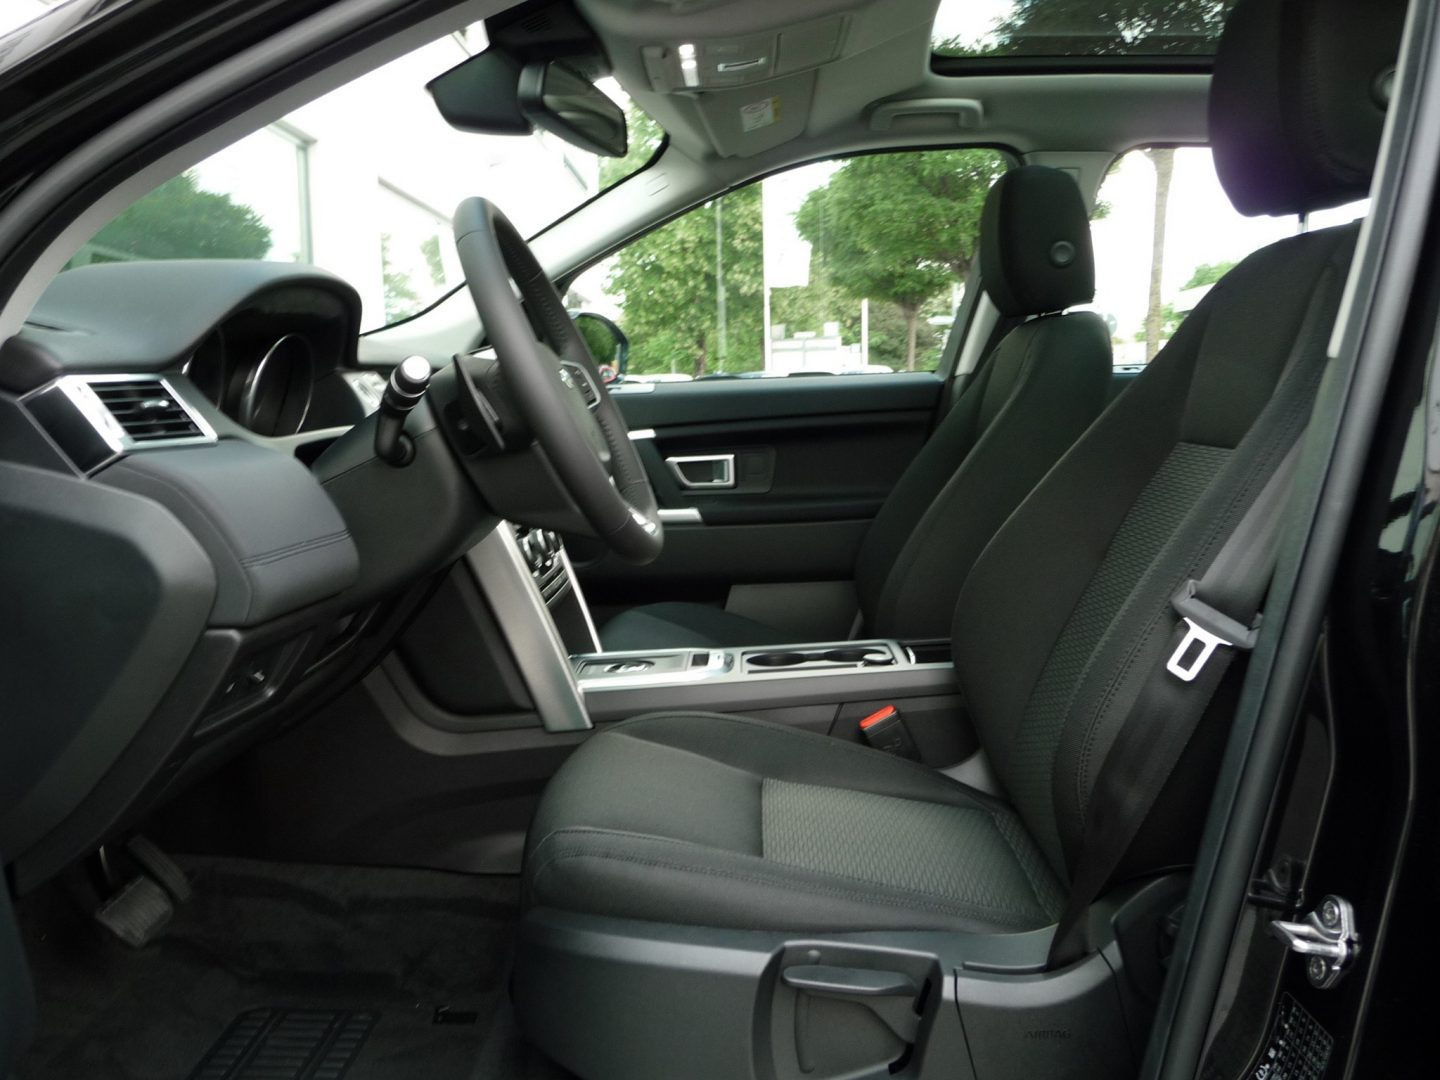 AIL Land Rover DISCOVERY SPORT Si4 SE PANORAMA  5